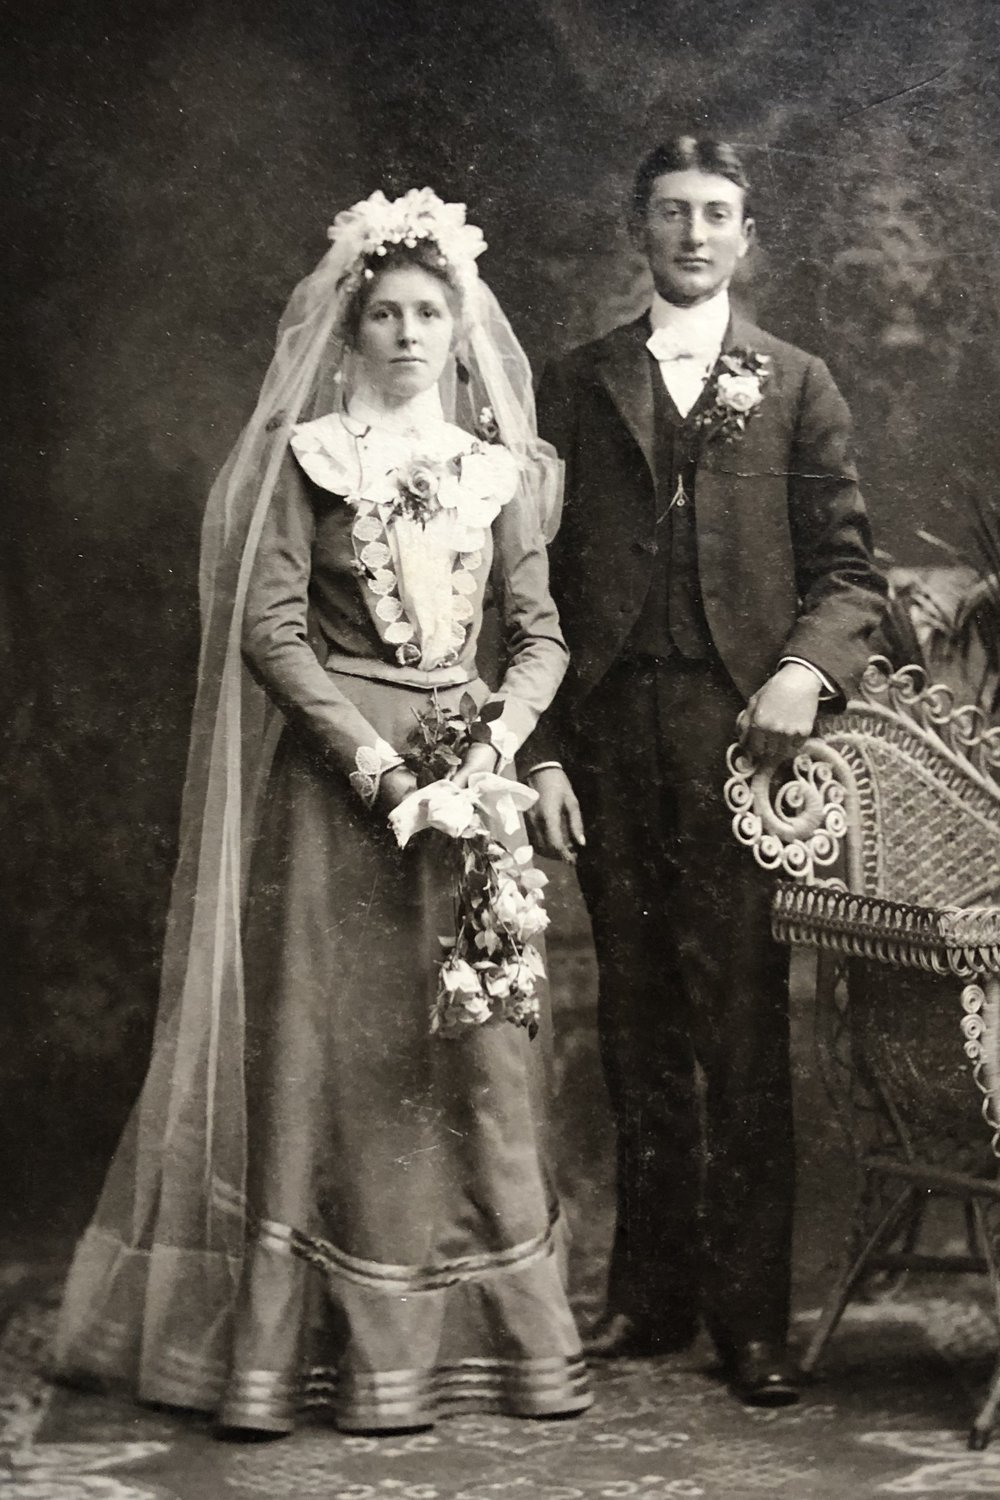 Mary Katherine Stoppenhagen and Charles Nicholas Werling pose for their wedding portrait in 1902.